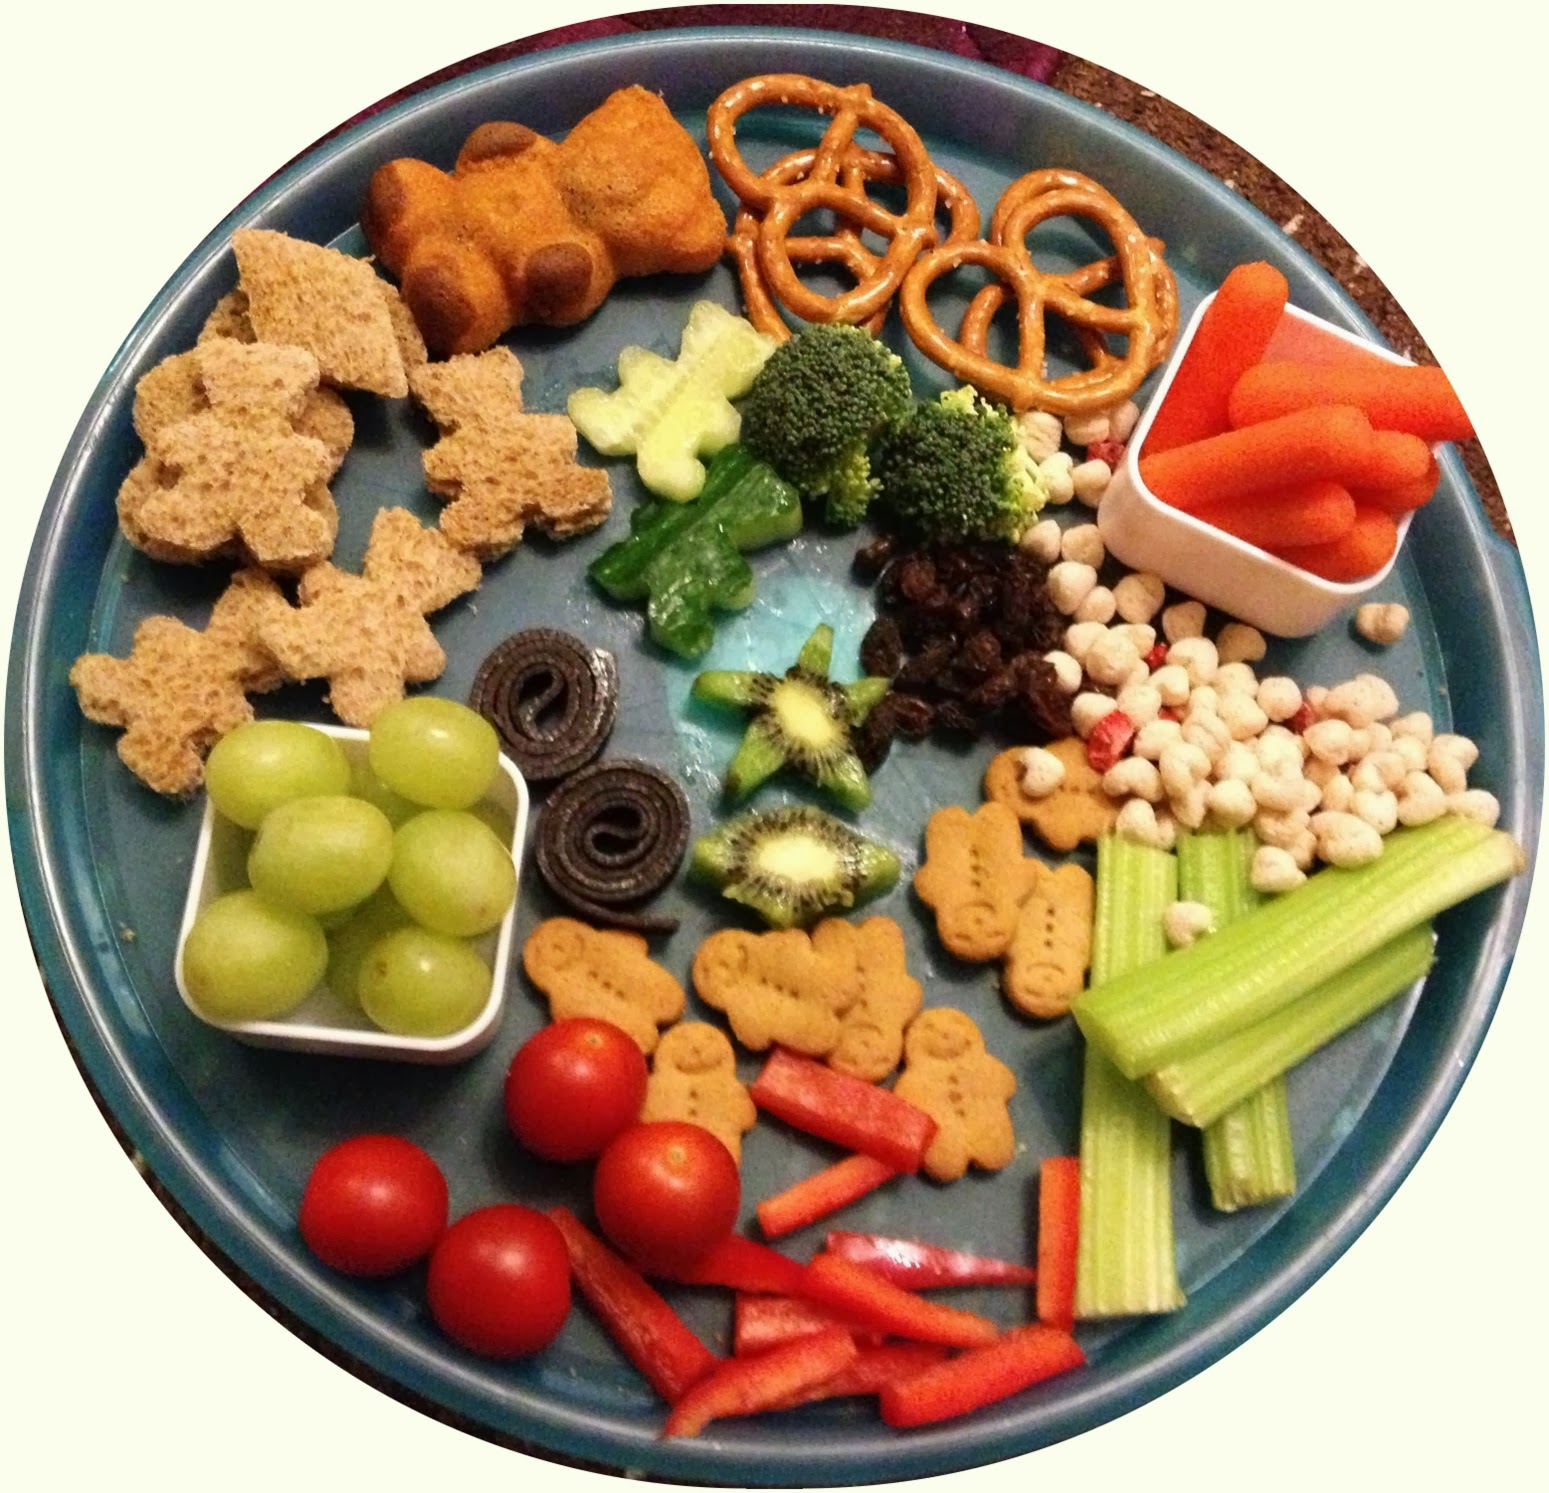 Picnic Food Ideas For Kids Fun and healthy lunchbox ideas ...